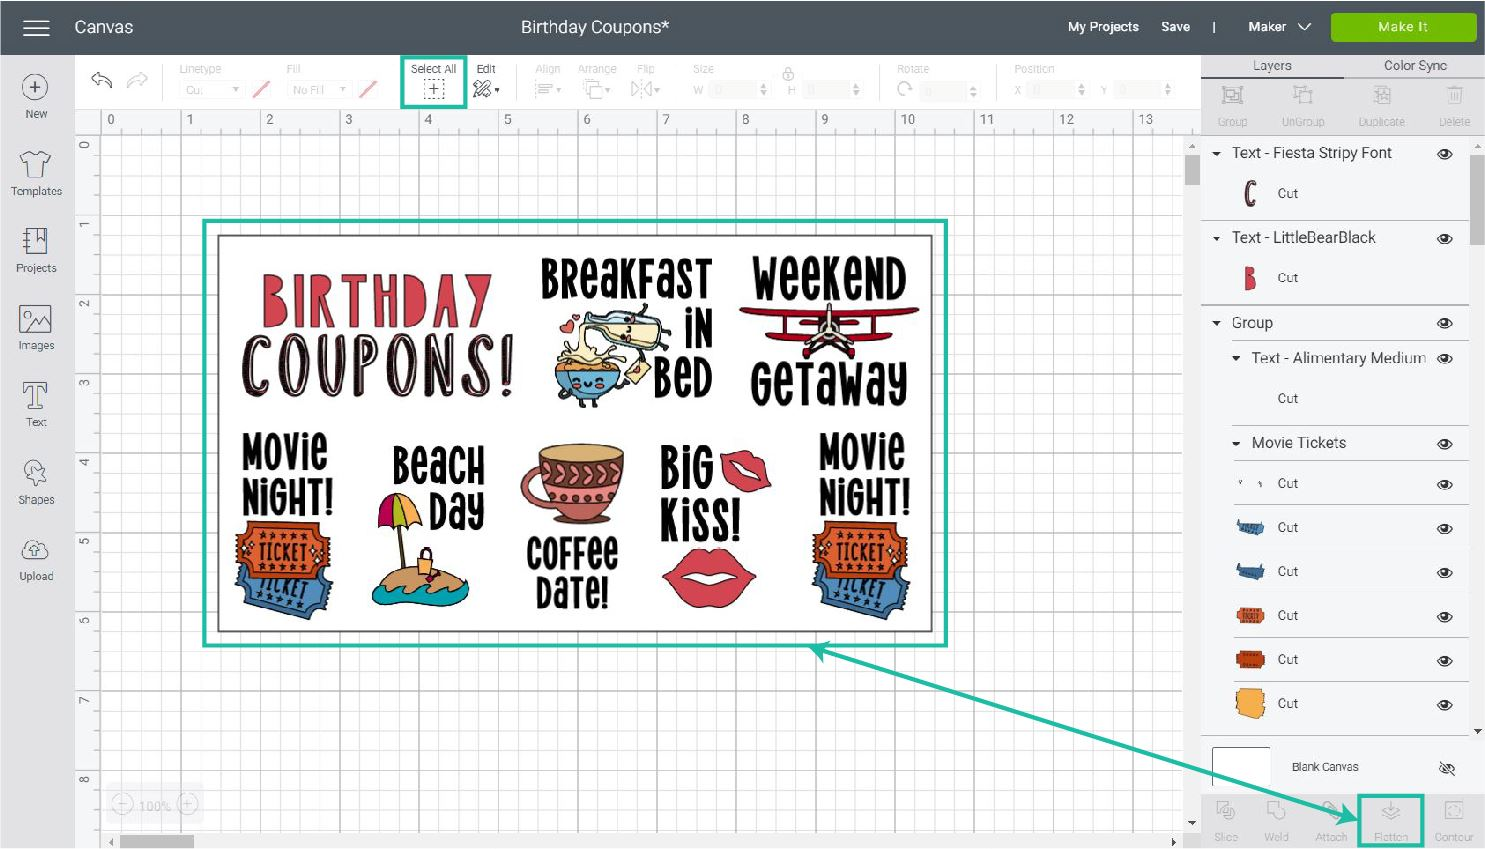 Completing print then cut coupons in Cricut Design Space